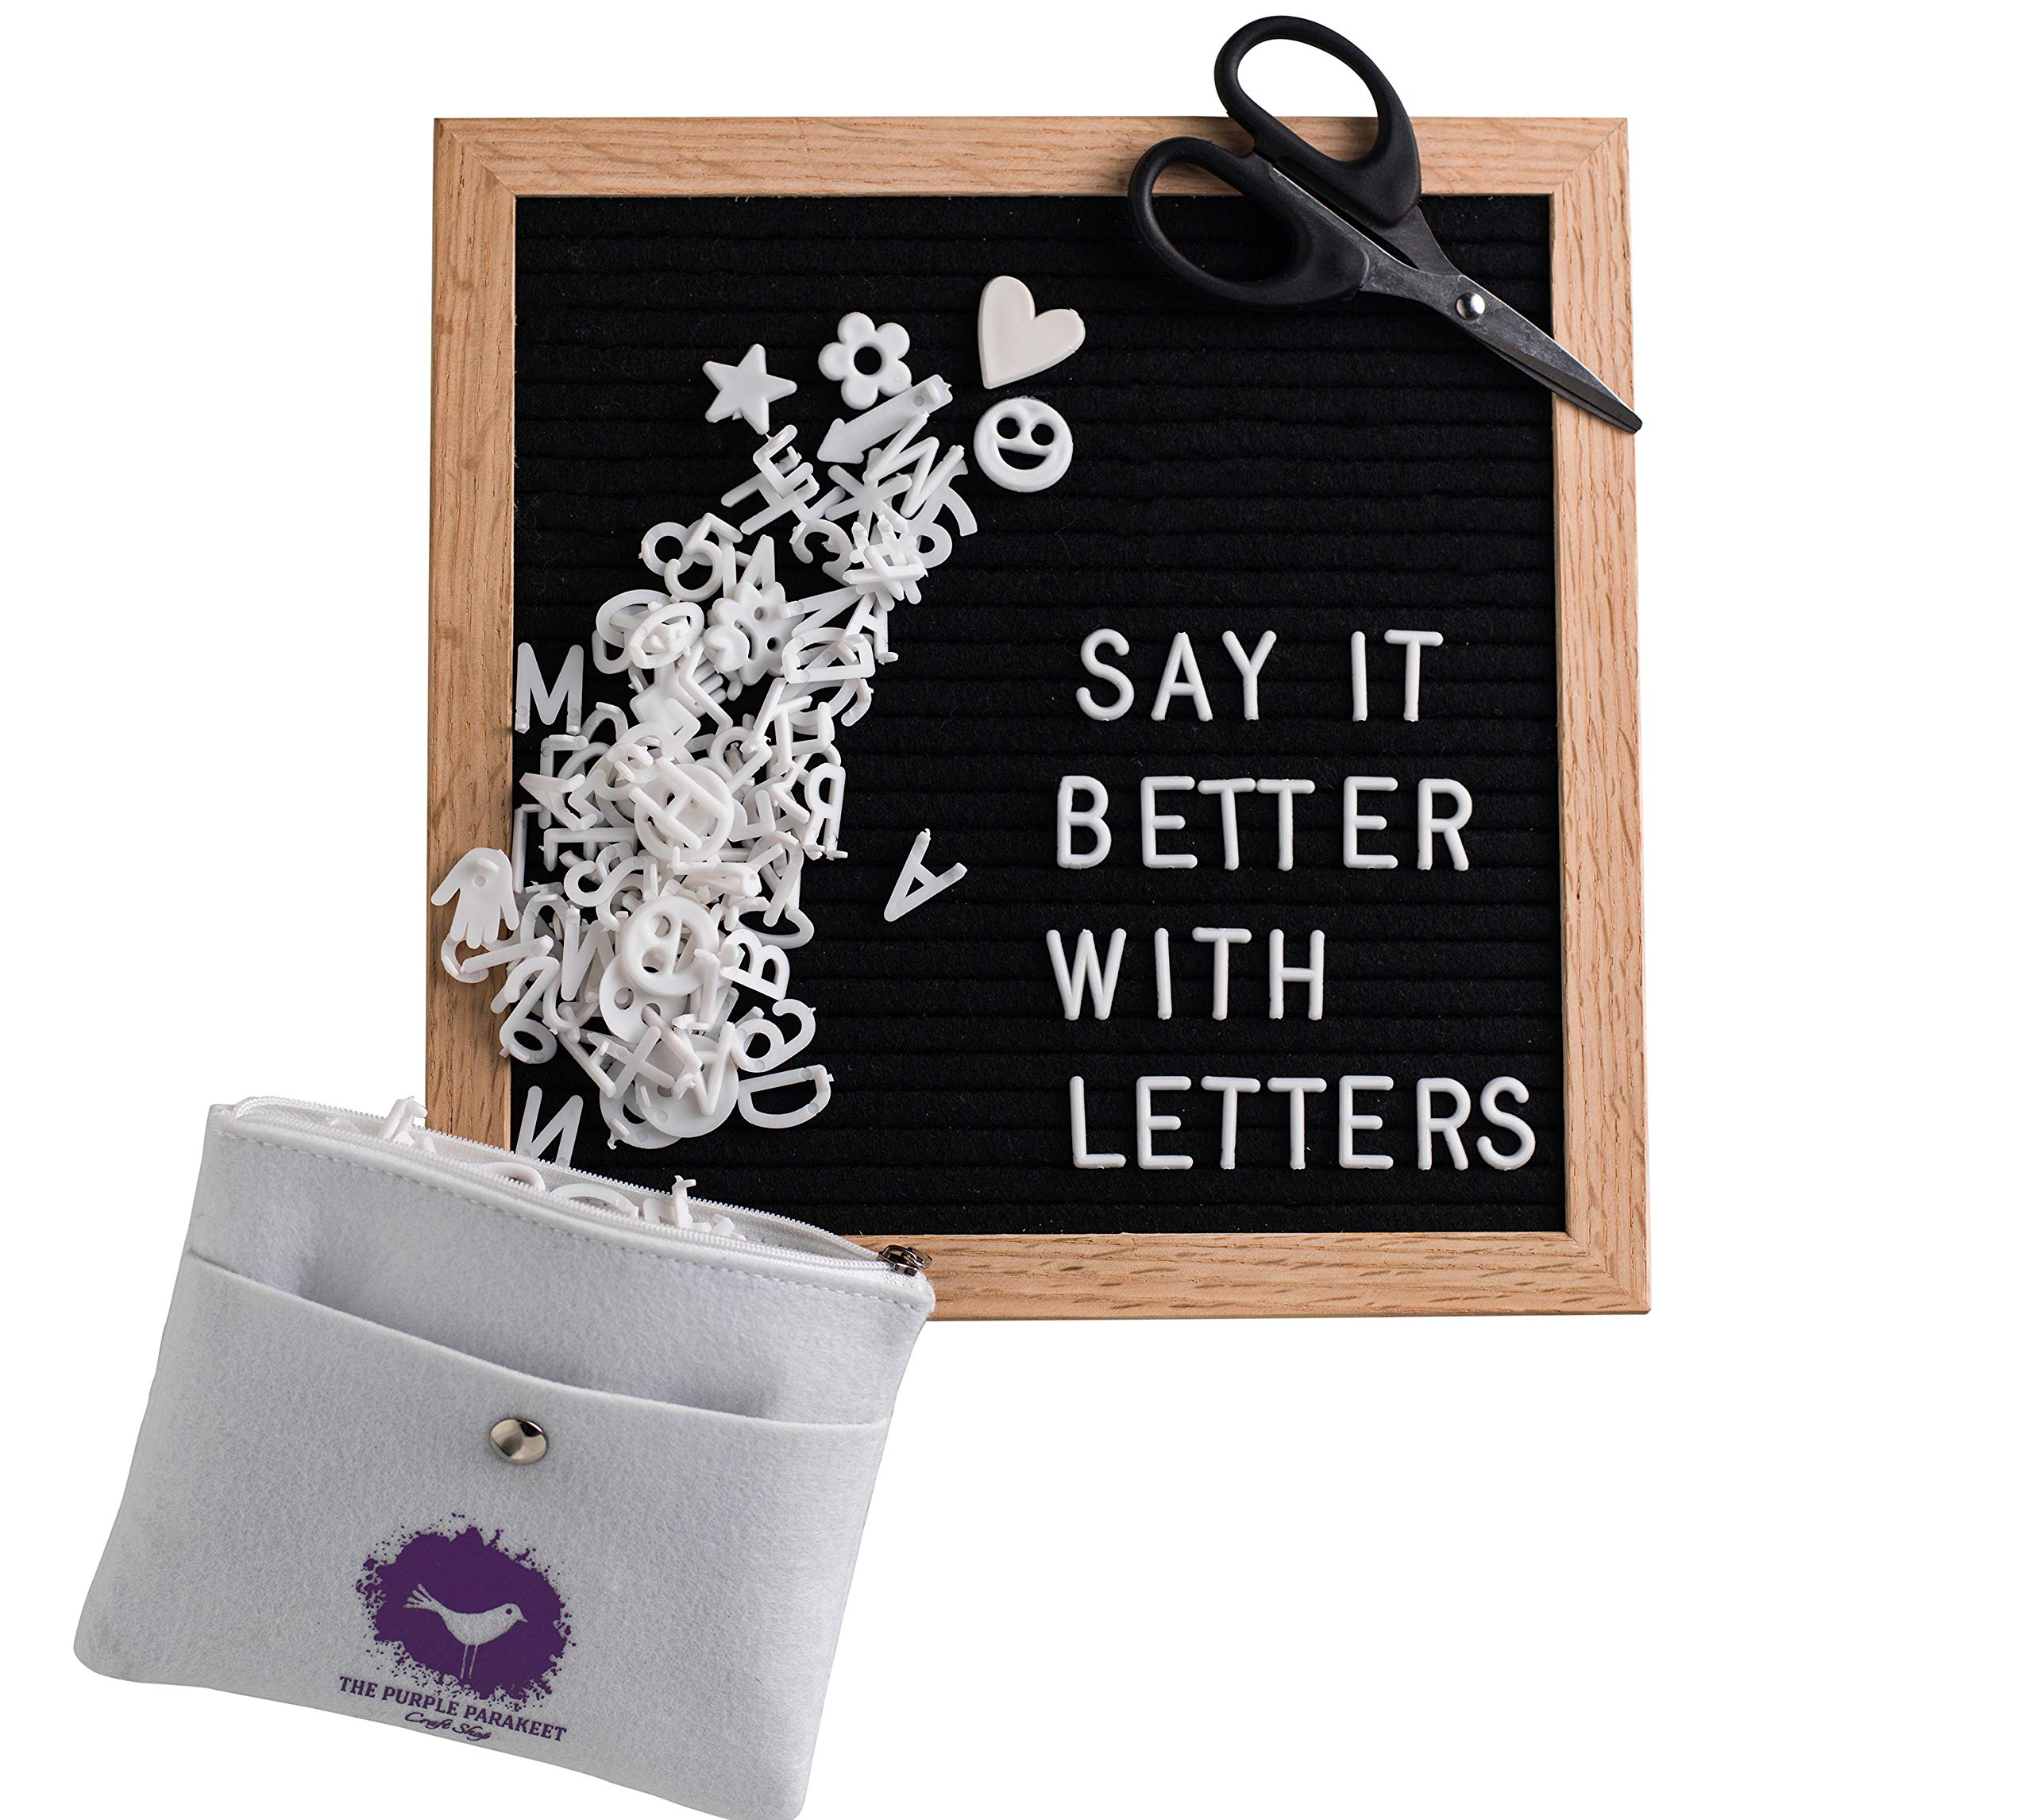 Letter Board - Black Felt Letter Board 10x10 with 340 Letters - Solid Oak Frame, Stand, Felt Bag, Scissors - for Home Decor, Offices & Cafes - Perfect for Special Occasions and Instaquotes